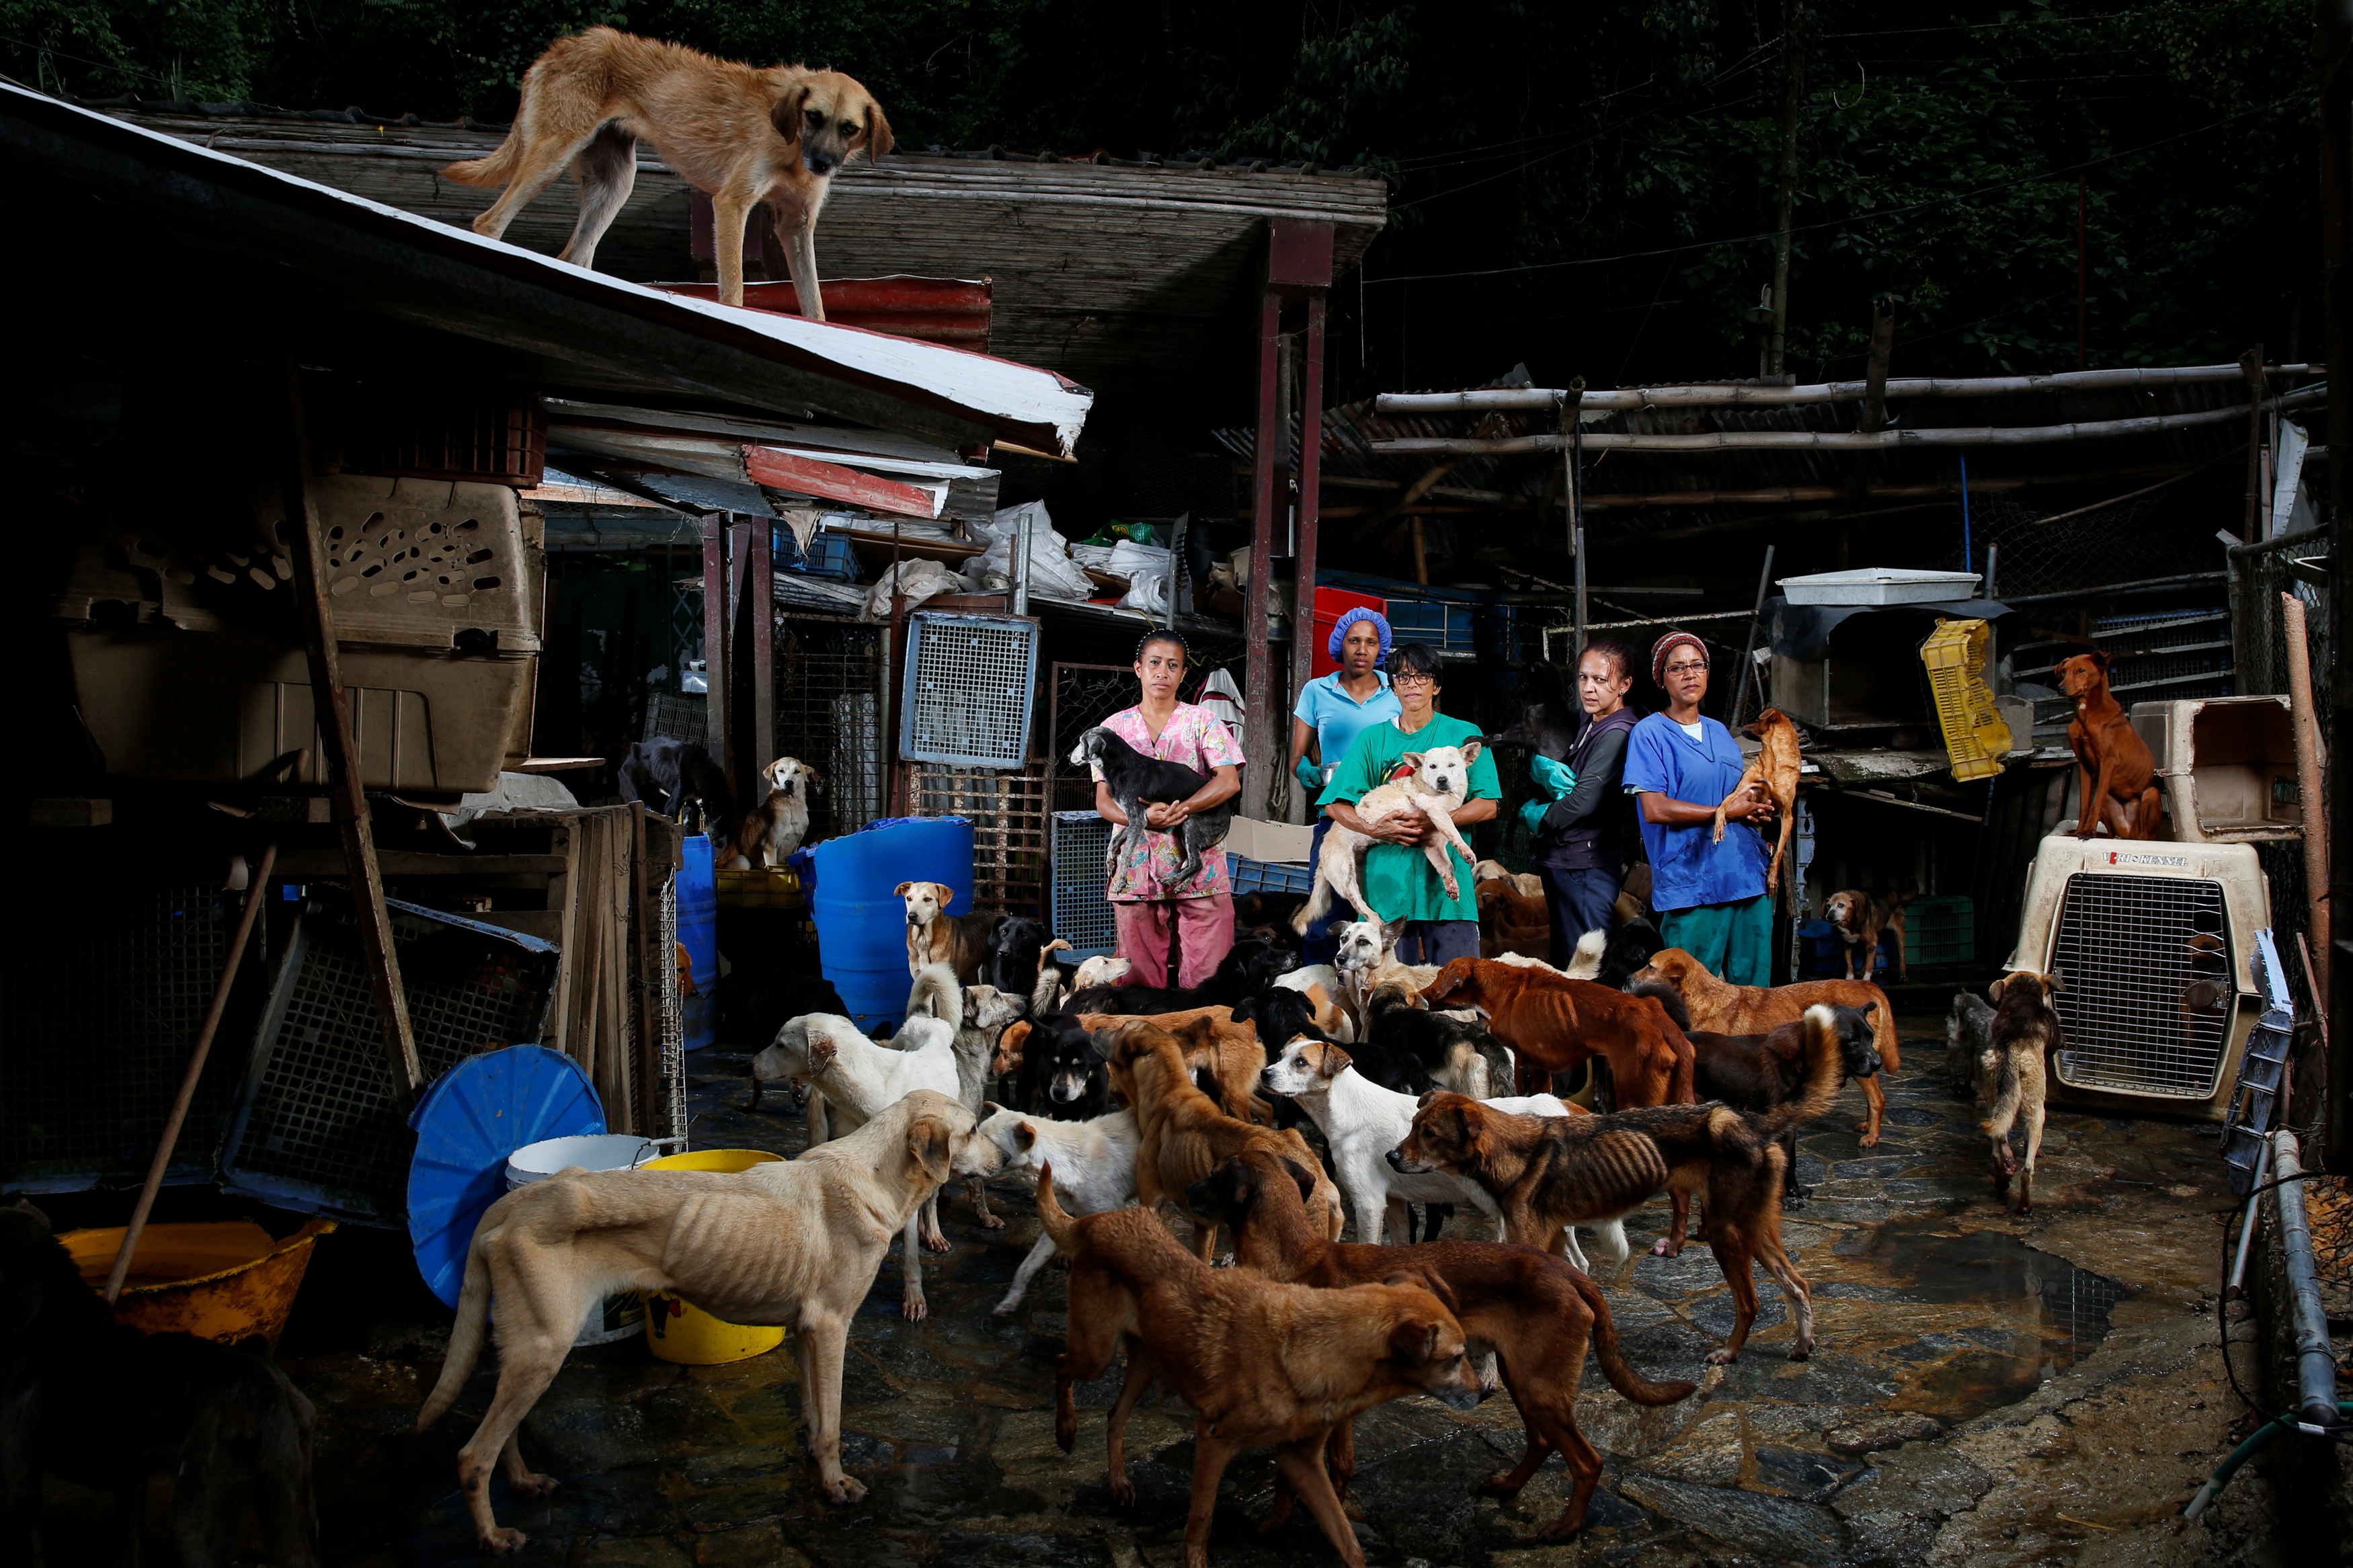 From left: Maria Silva, Milena Cortes, Maria Arteaga, Jackeline Bastidas and Gissy Abello at the Famproa dogs shelter where they work, in Los Teques, Venezuela, on Aug. 25, 2016.